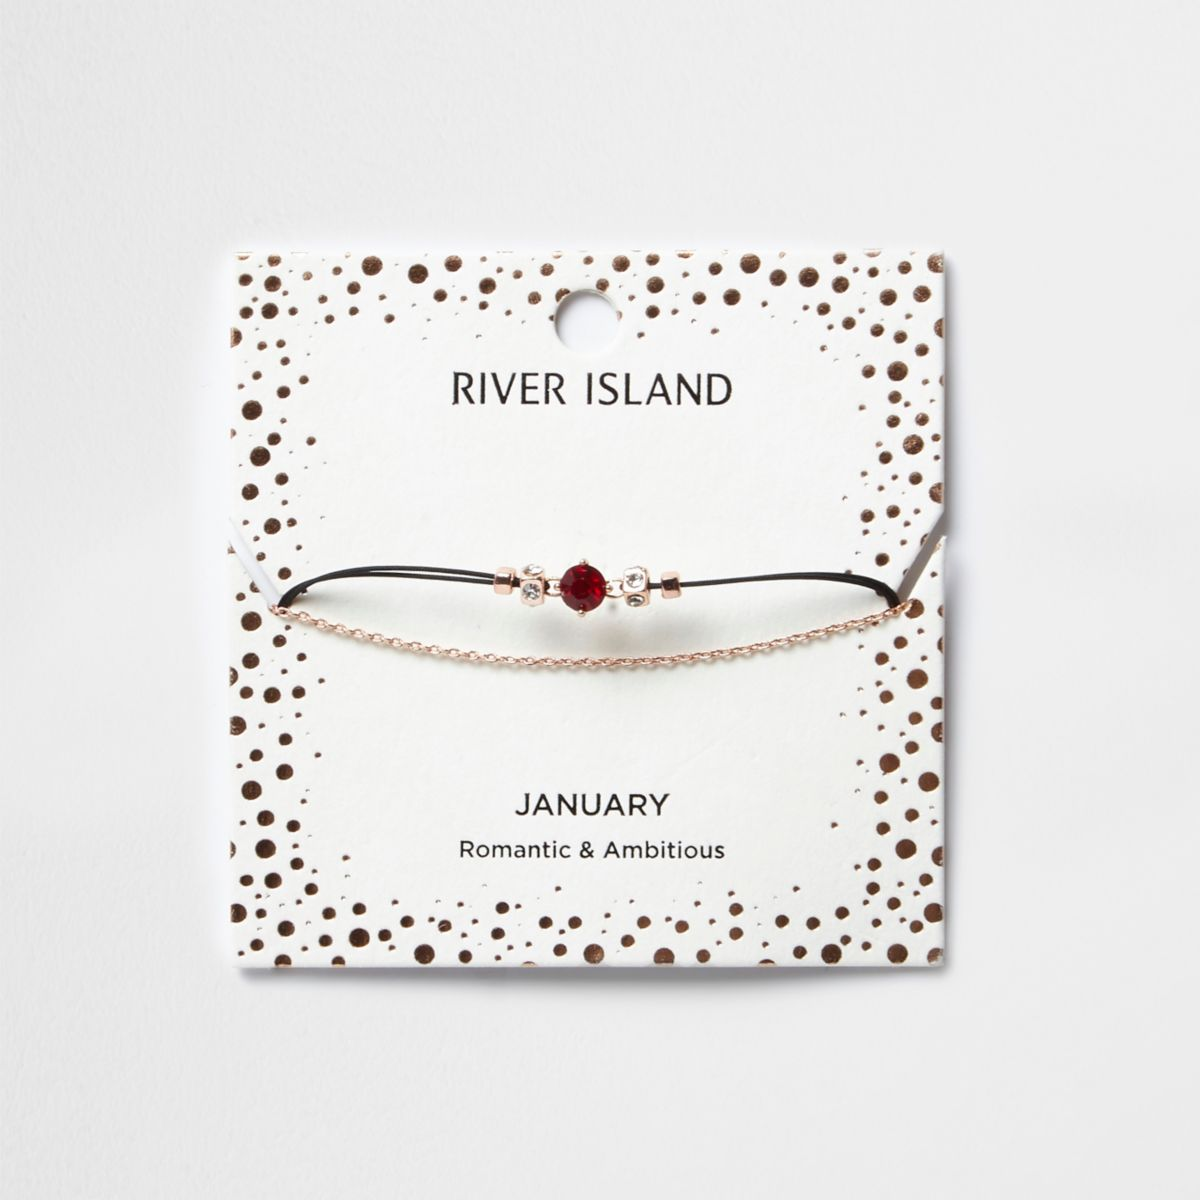 Red January birthstone chain bracelet